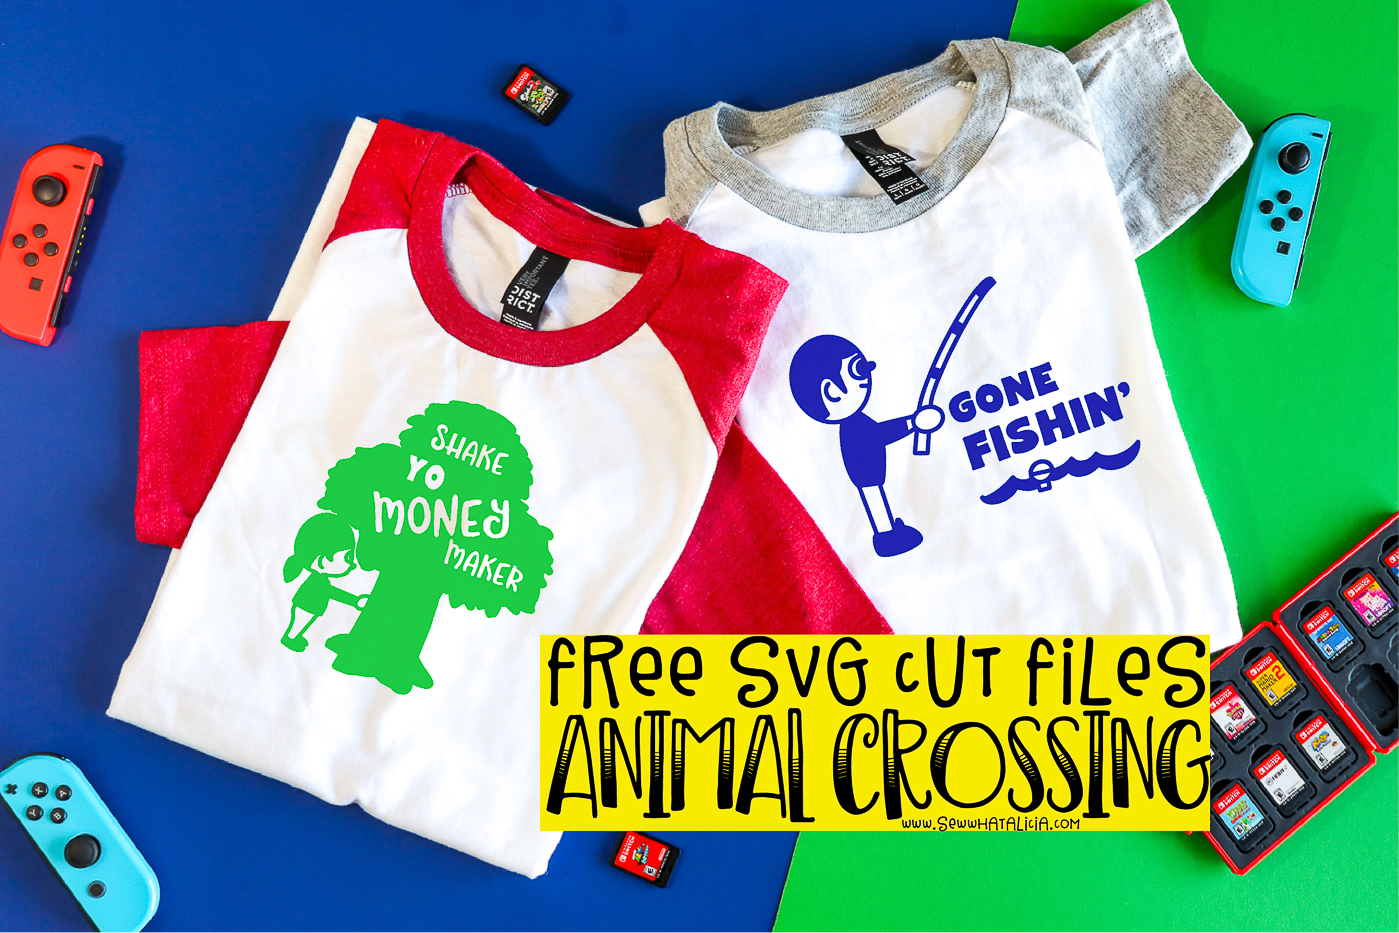 pictured tshirts with vinyl animal crossing images and nintendo switch controllers and video games